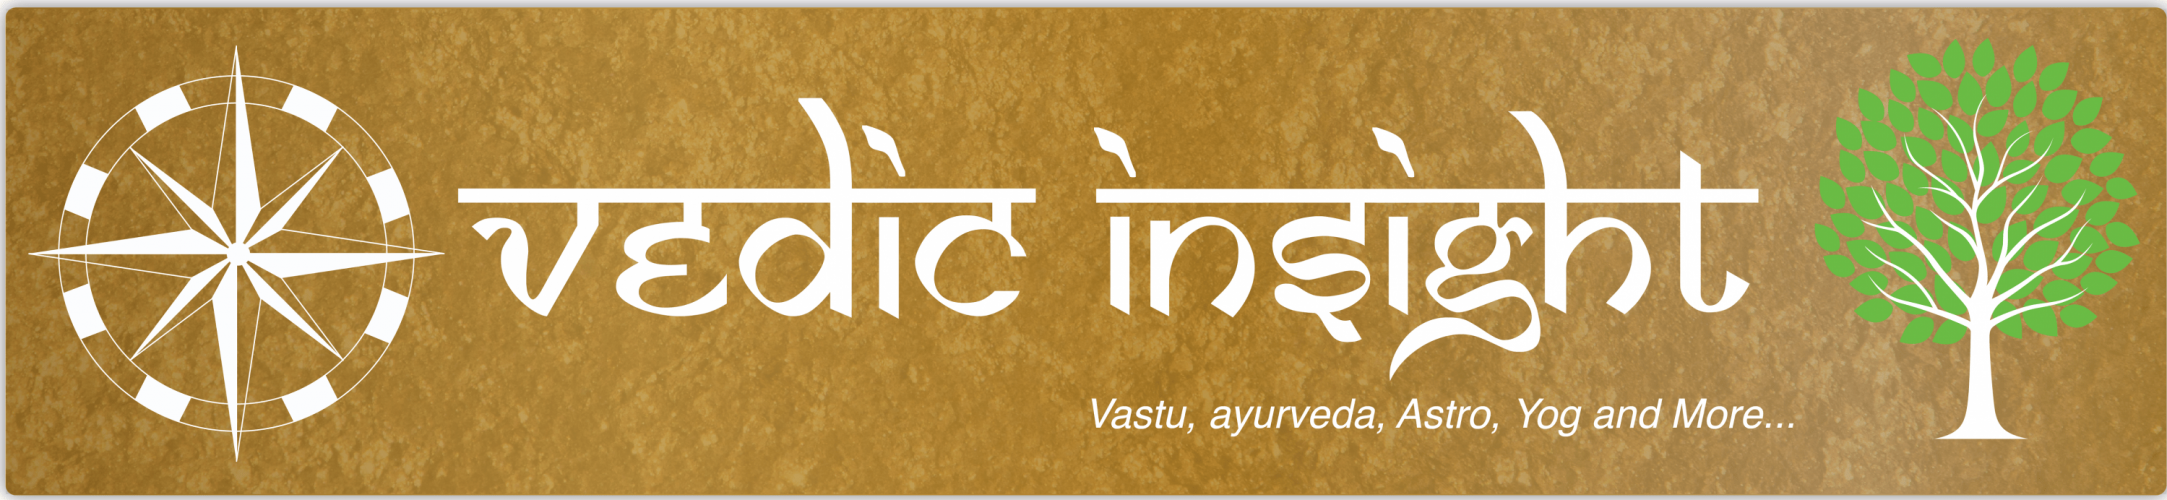 vedic Insight Logo